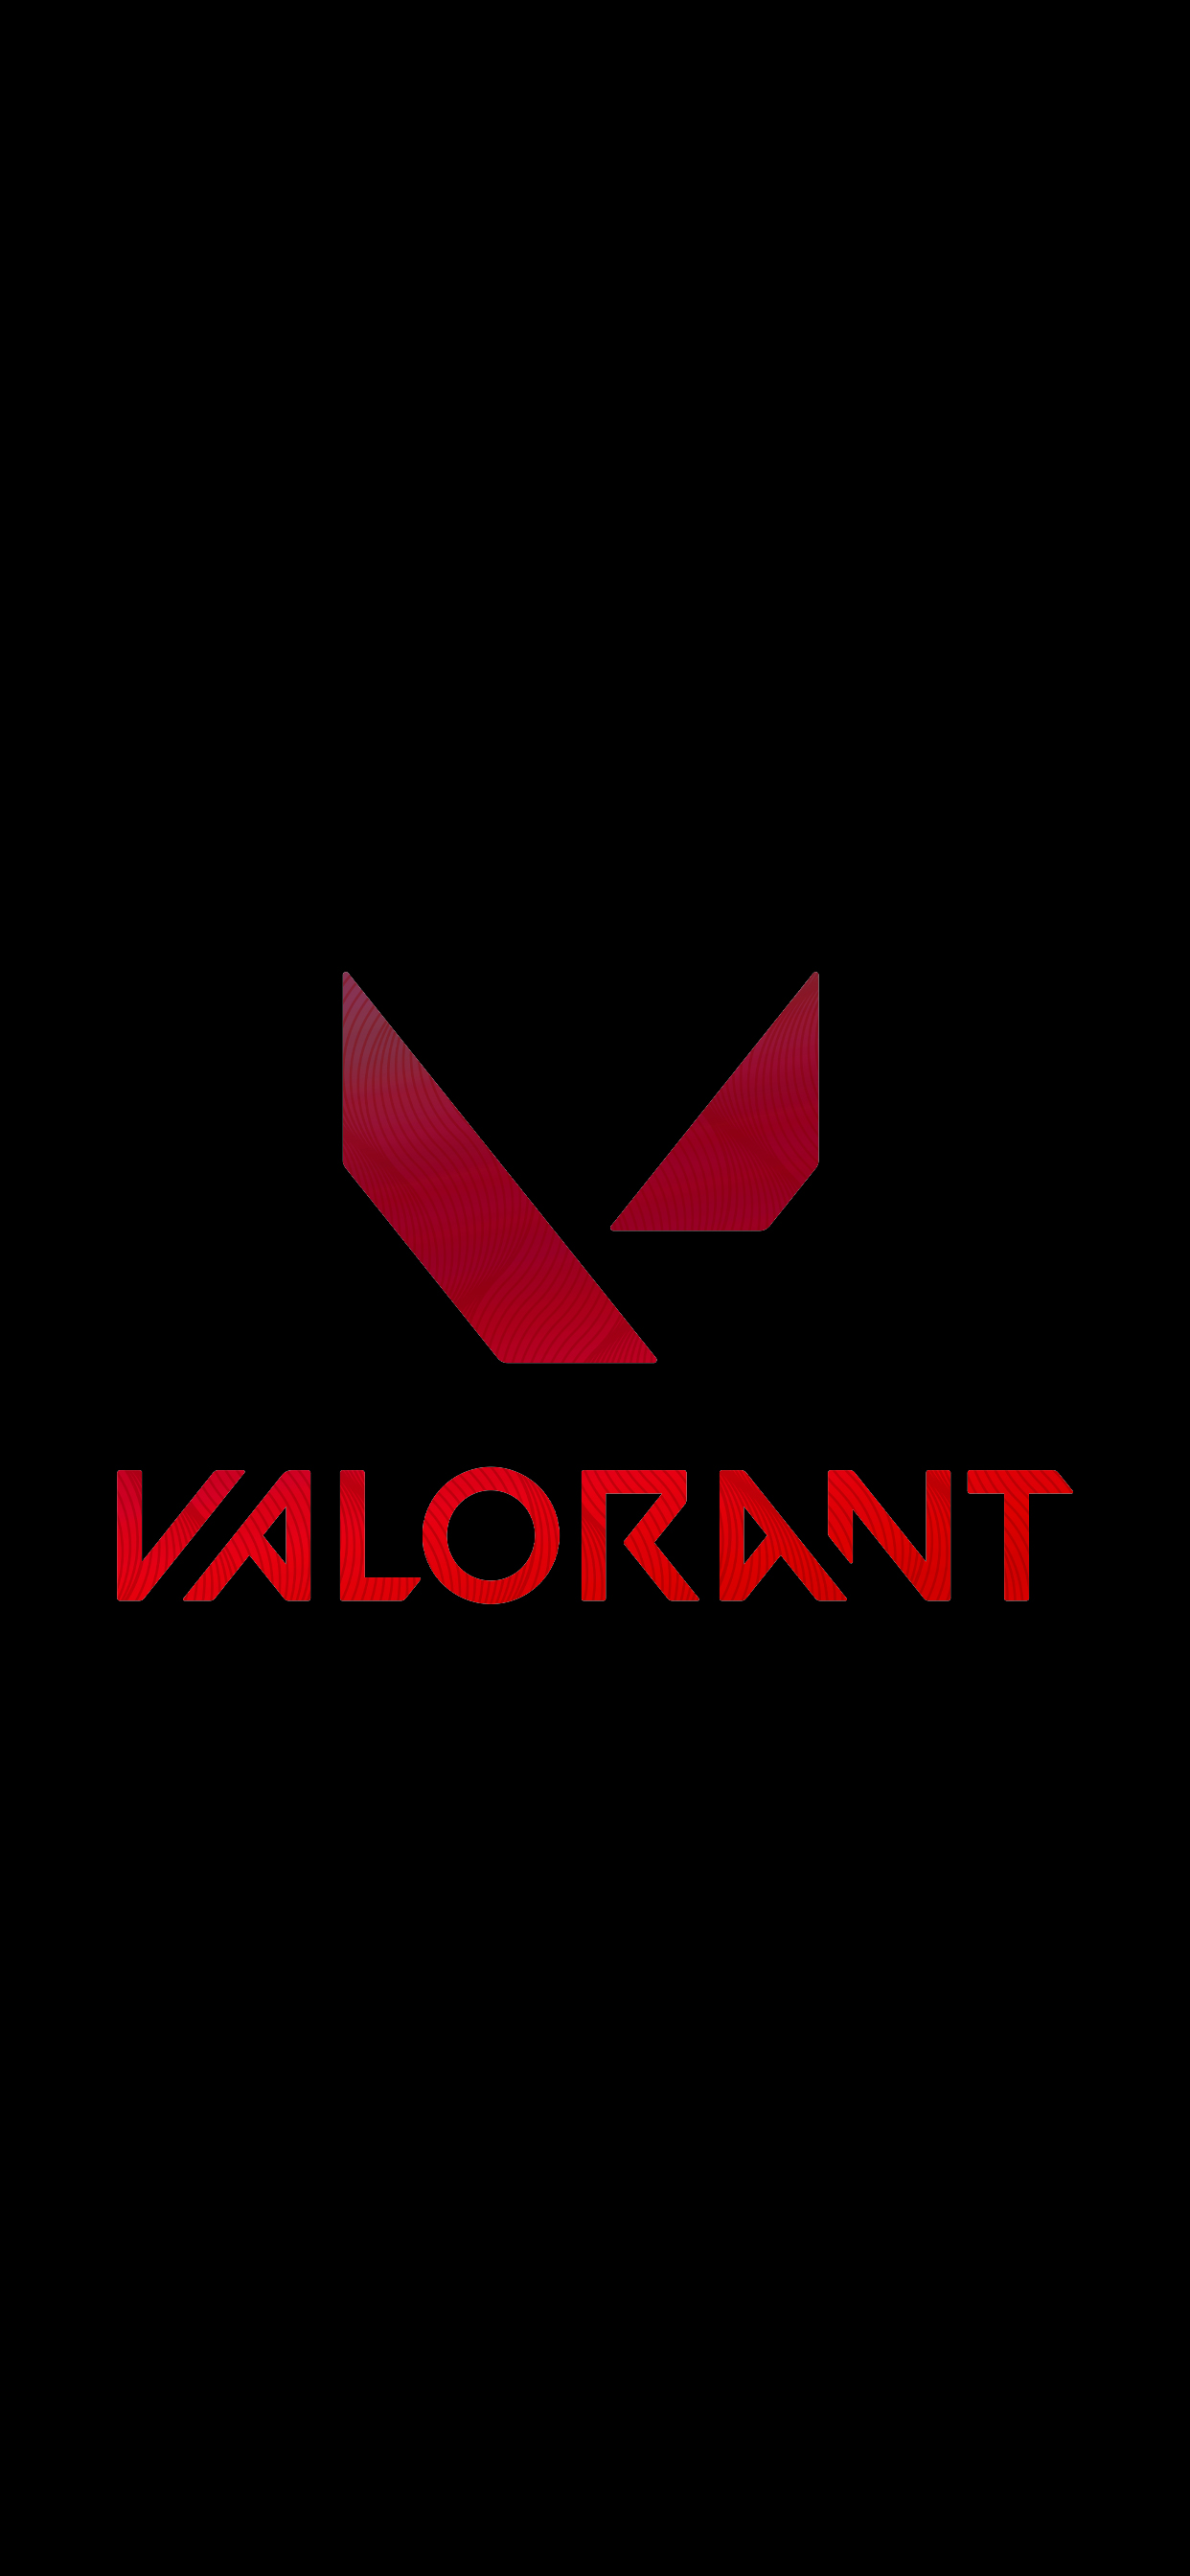 Valorant Iphone Wallpaper Black Iphone Wallpapers Wallpaperize